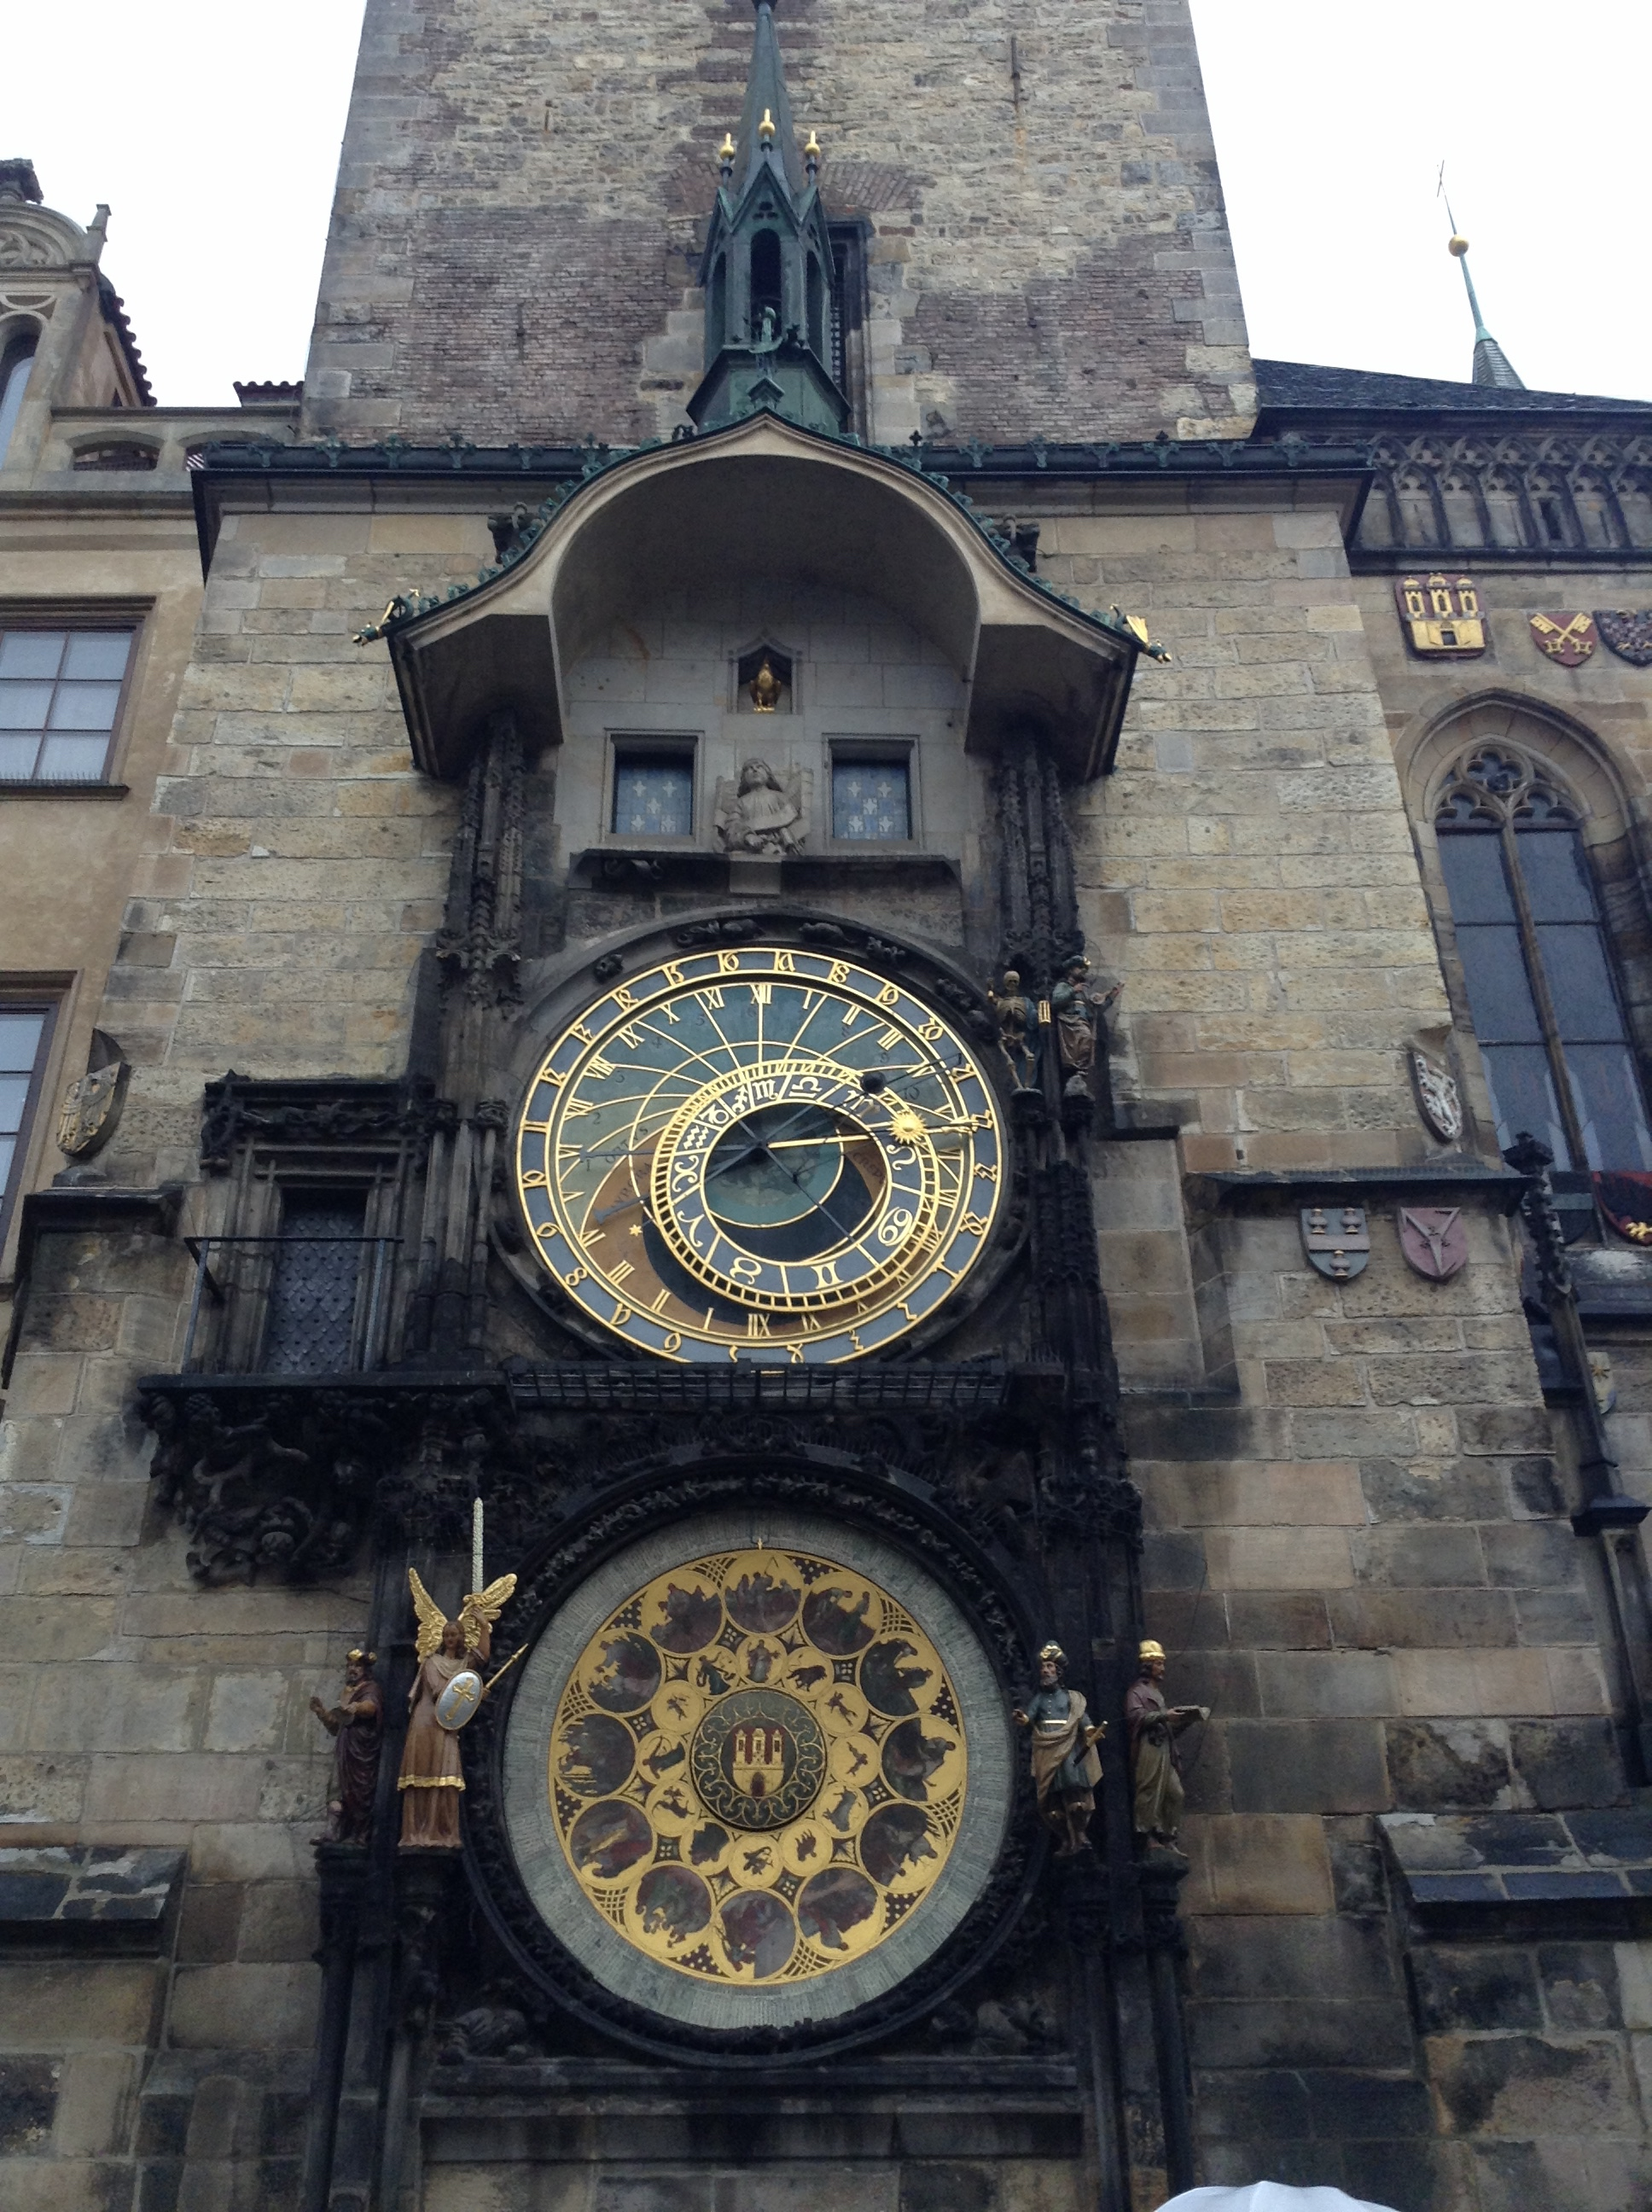 Nothing like learning time management from an unreasonably fancy, centuries old clock.